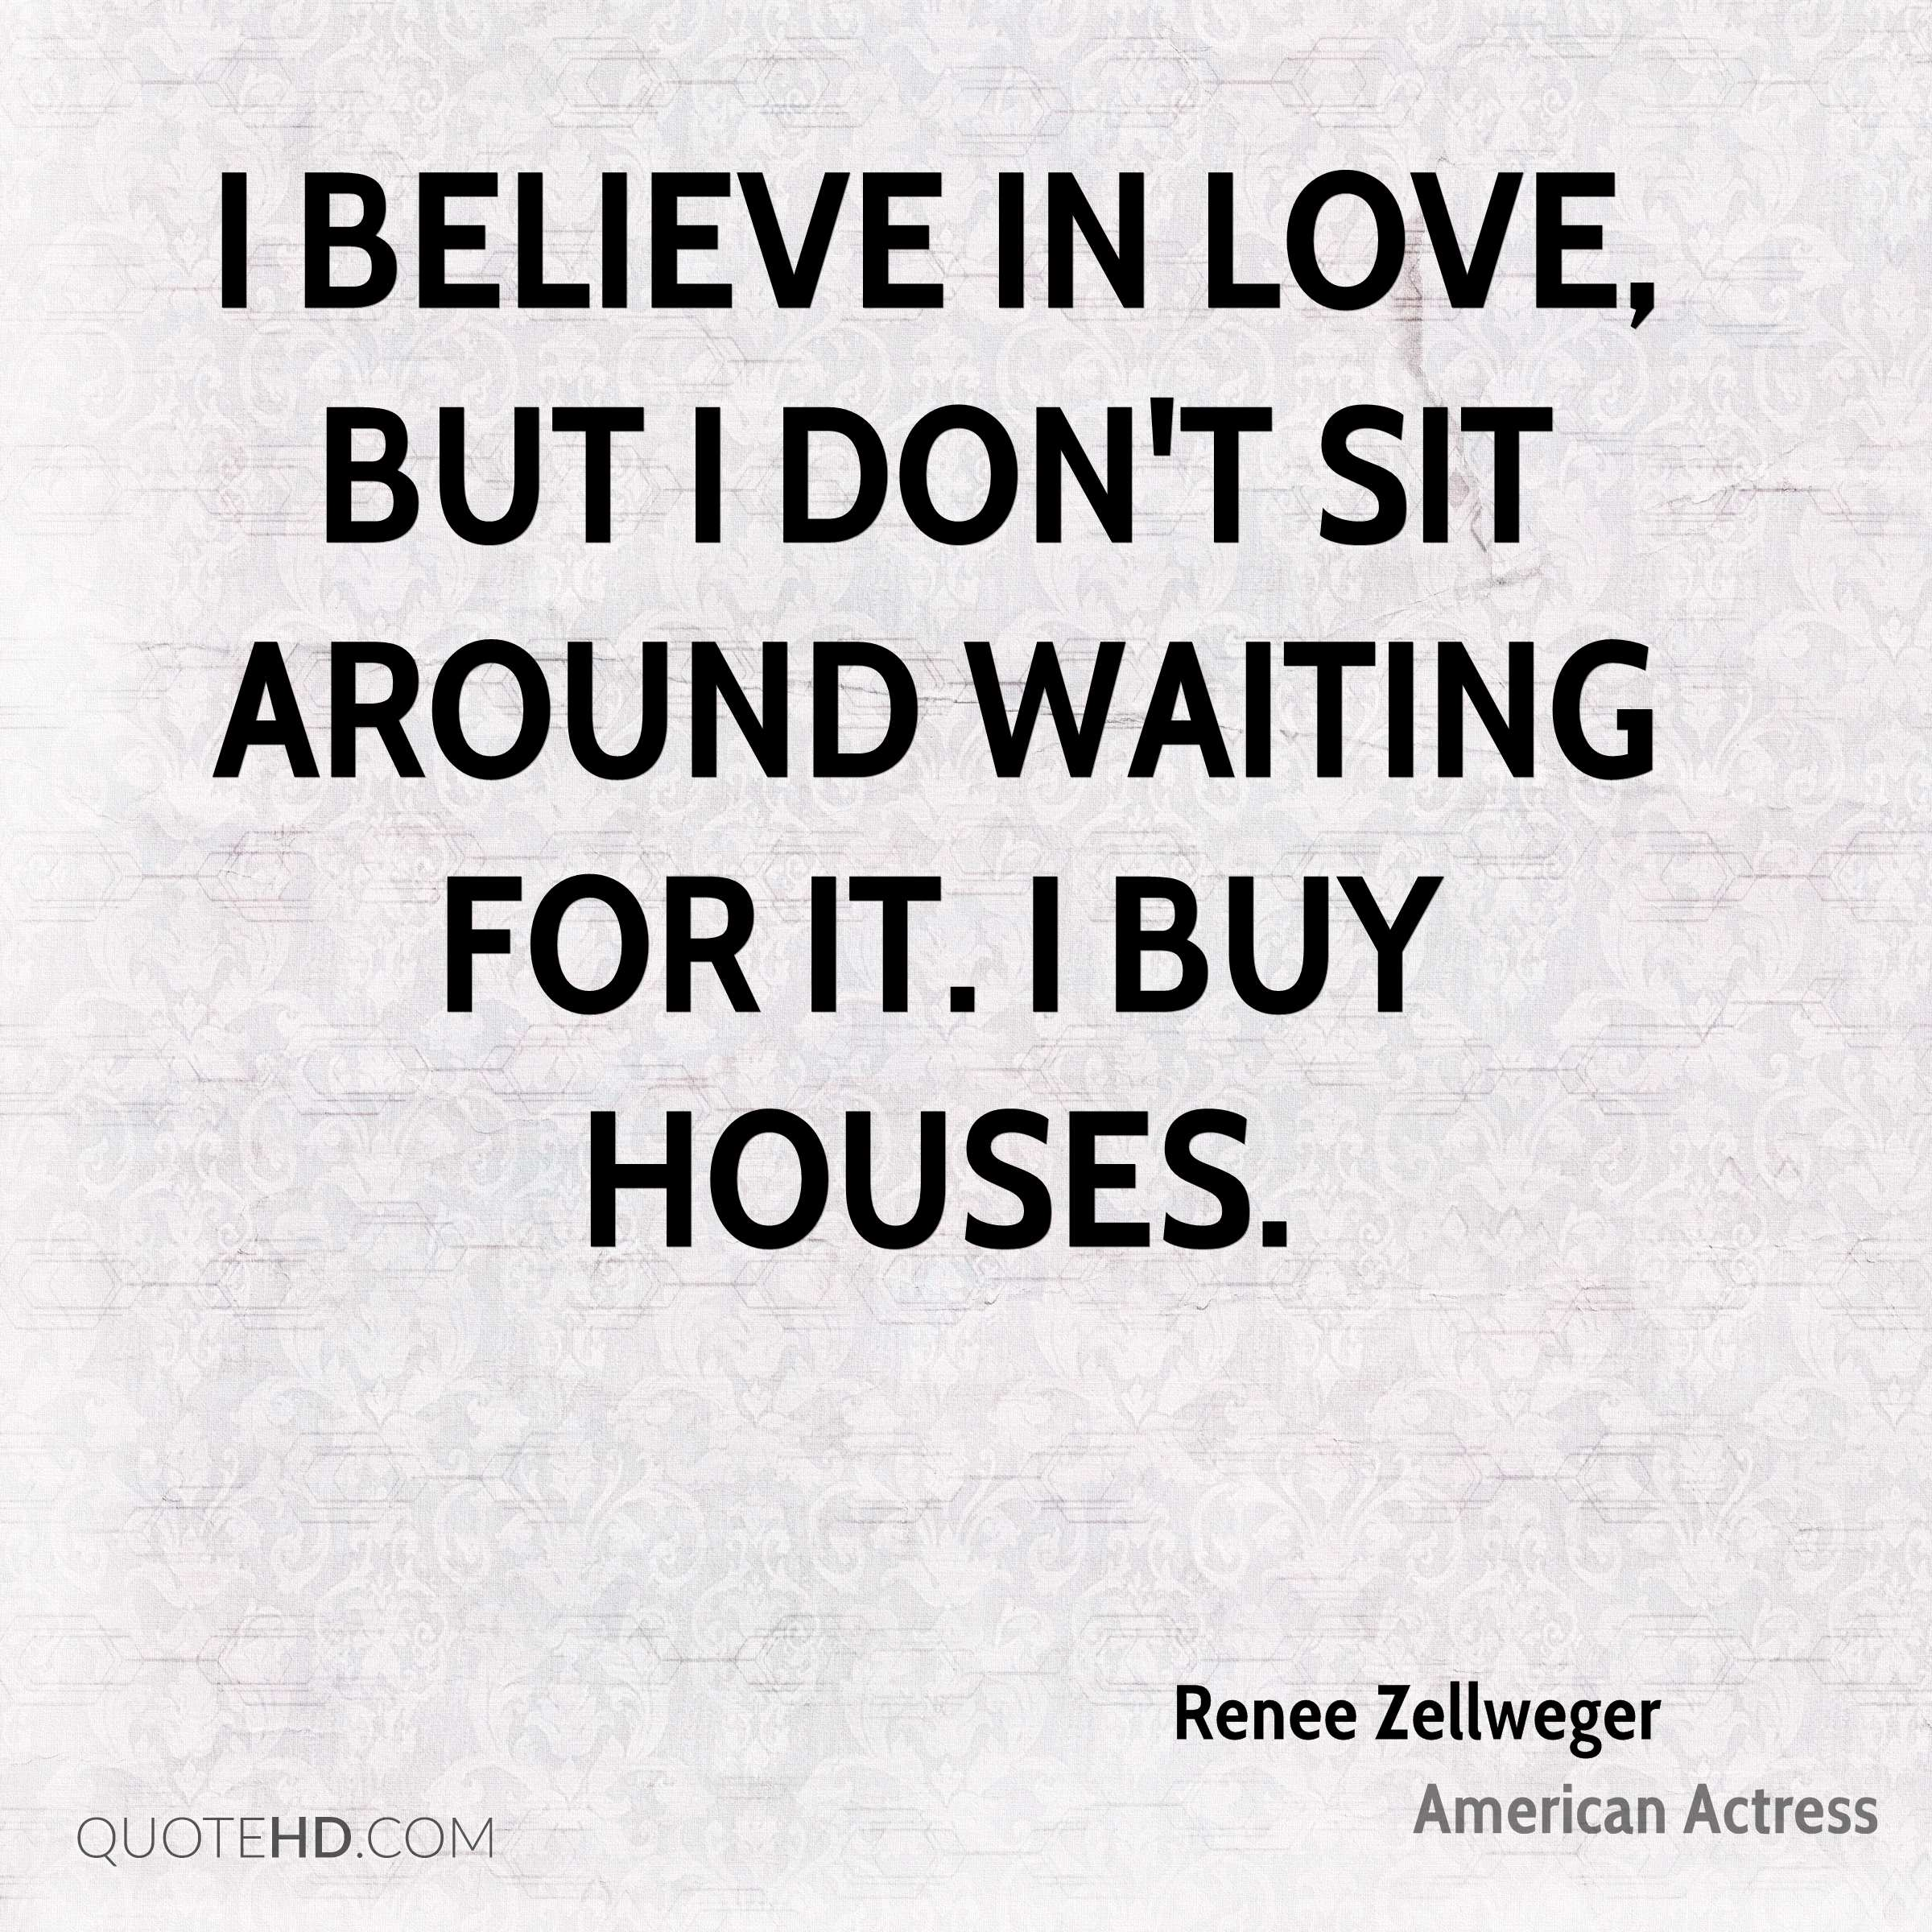 Believe In Love Quotes Renee Zellweger Quotes  Quotehd